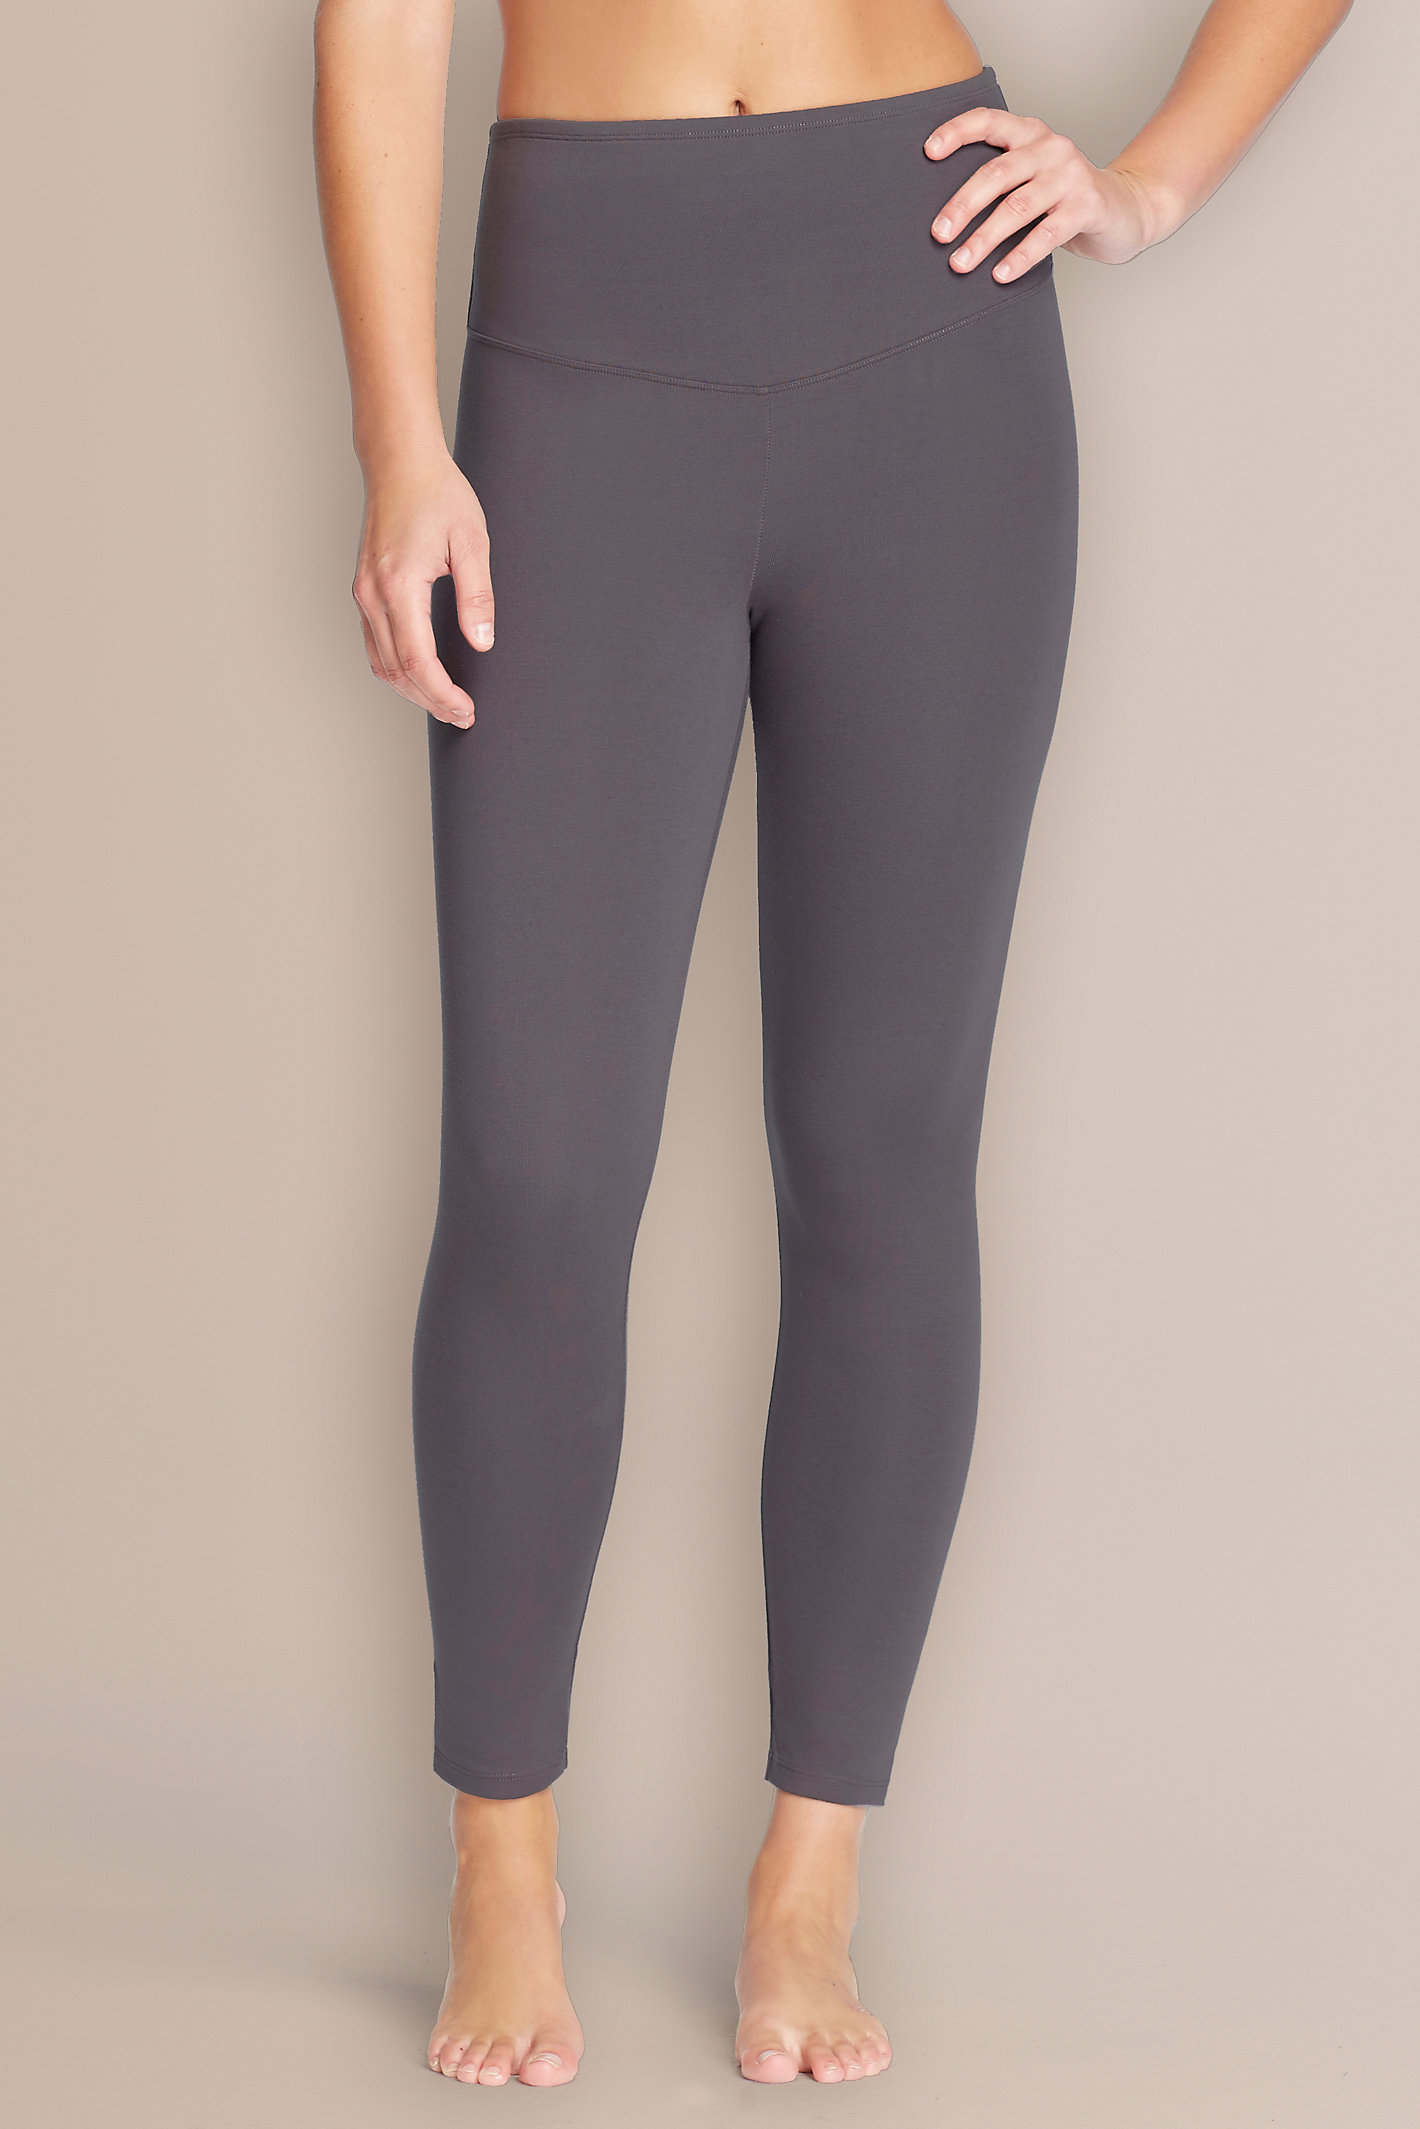 Yummie Slimming Crppd Leggings